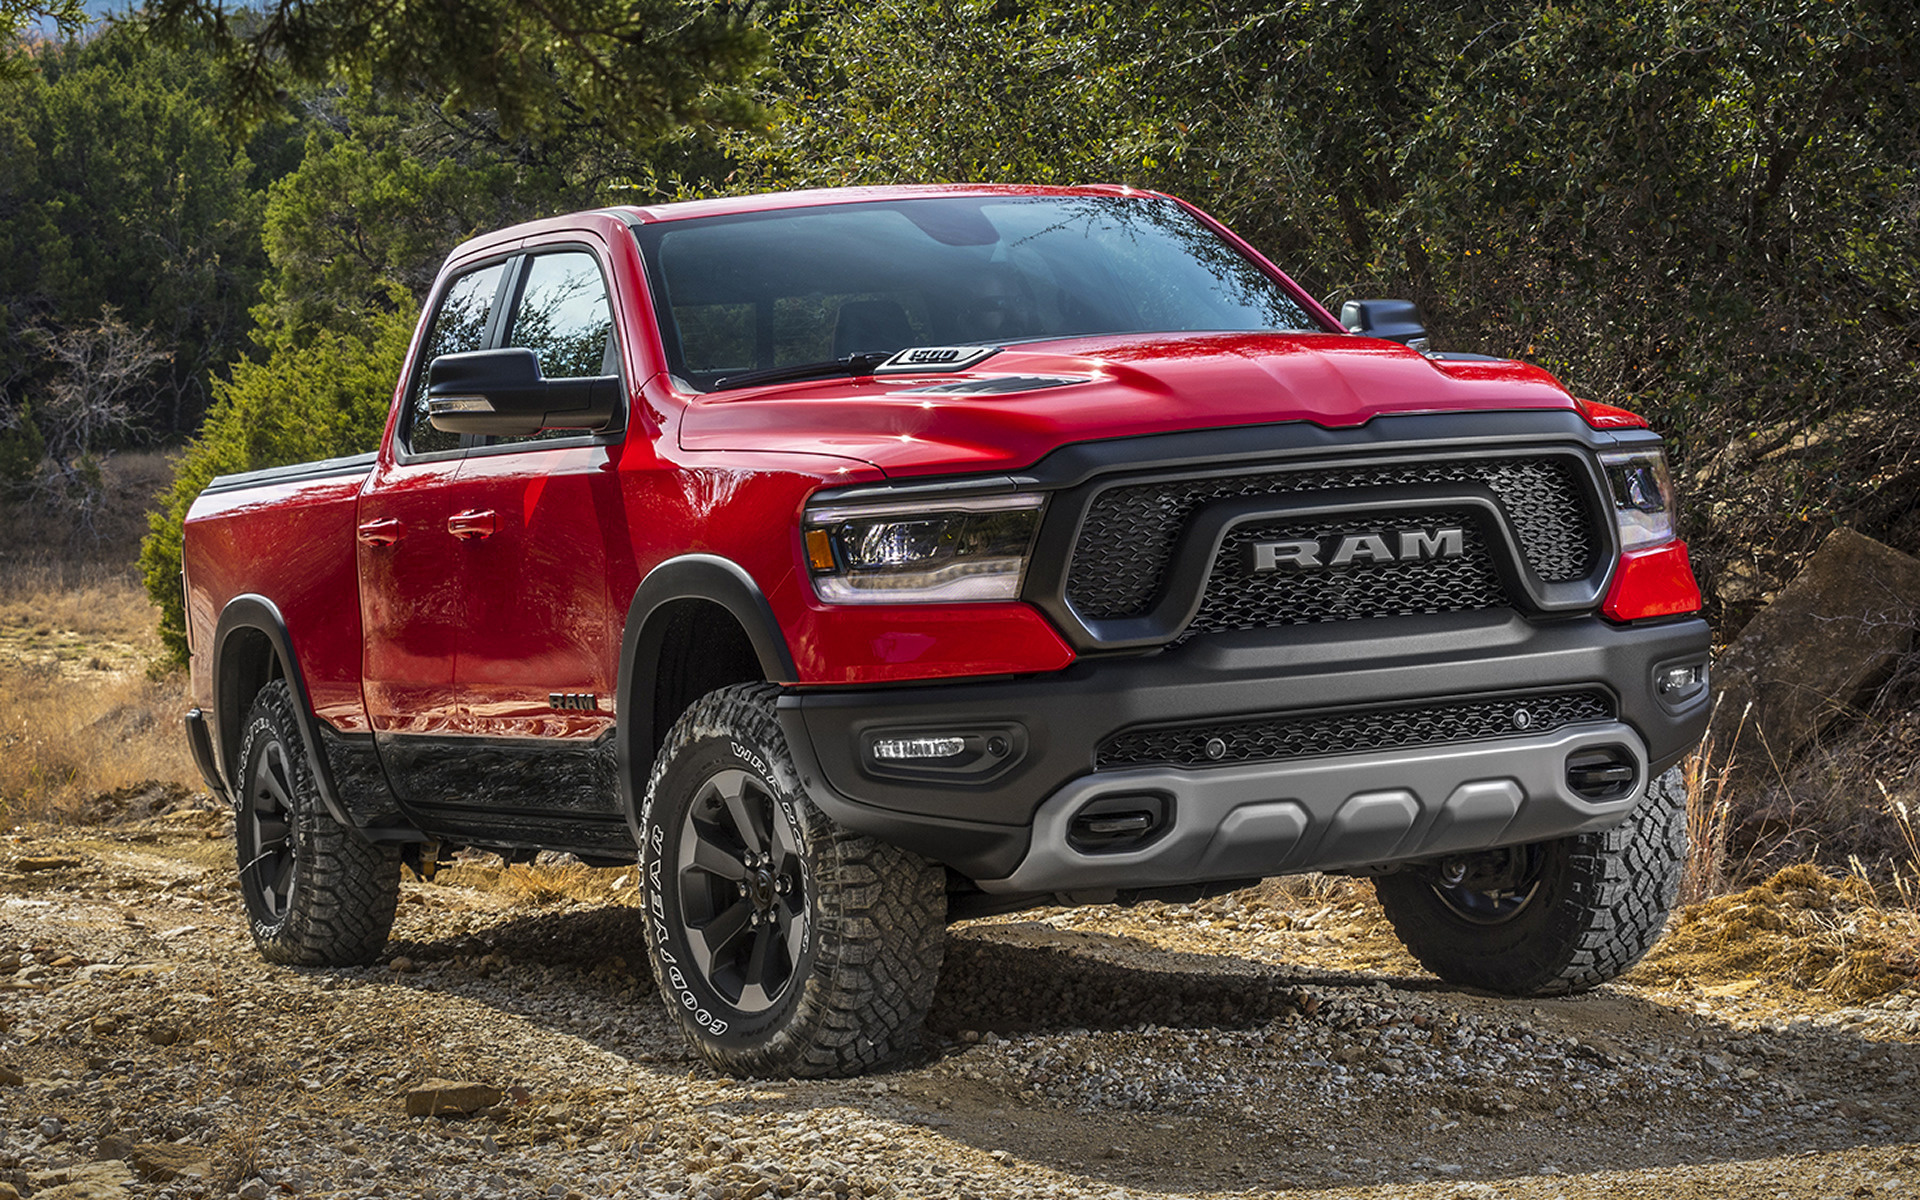 Ram 1500 Rebel >> 2019 Ram 1500 Rebel Quad Cab - Wallpapers and HD Images | Car Pixel